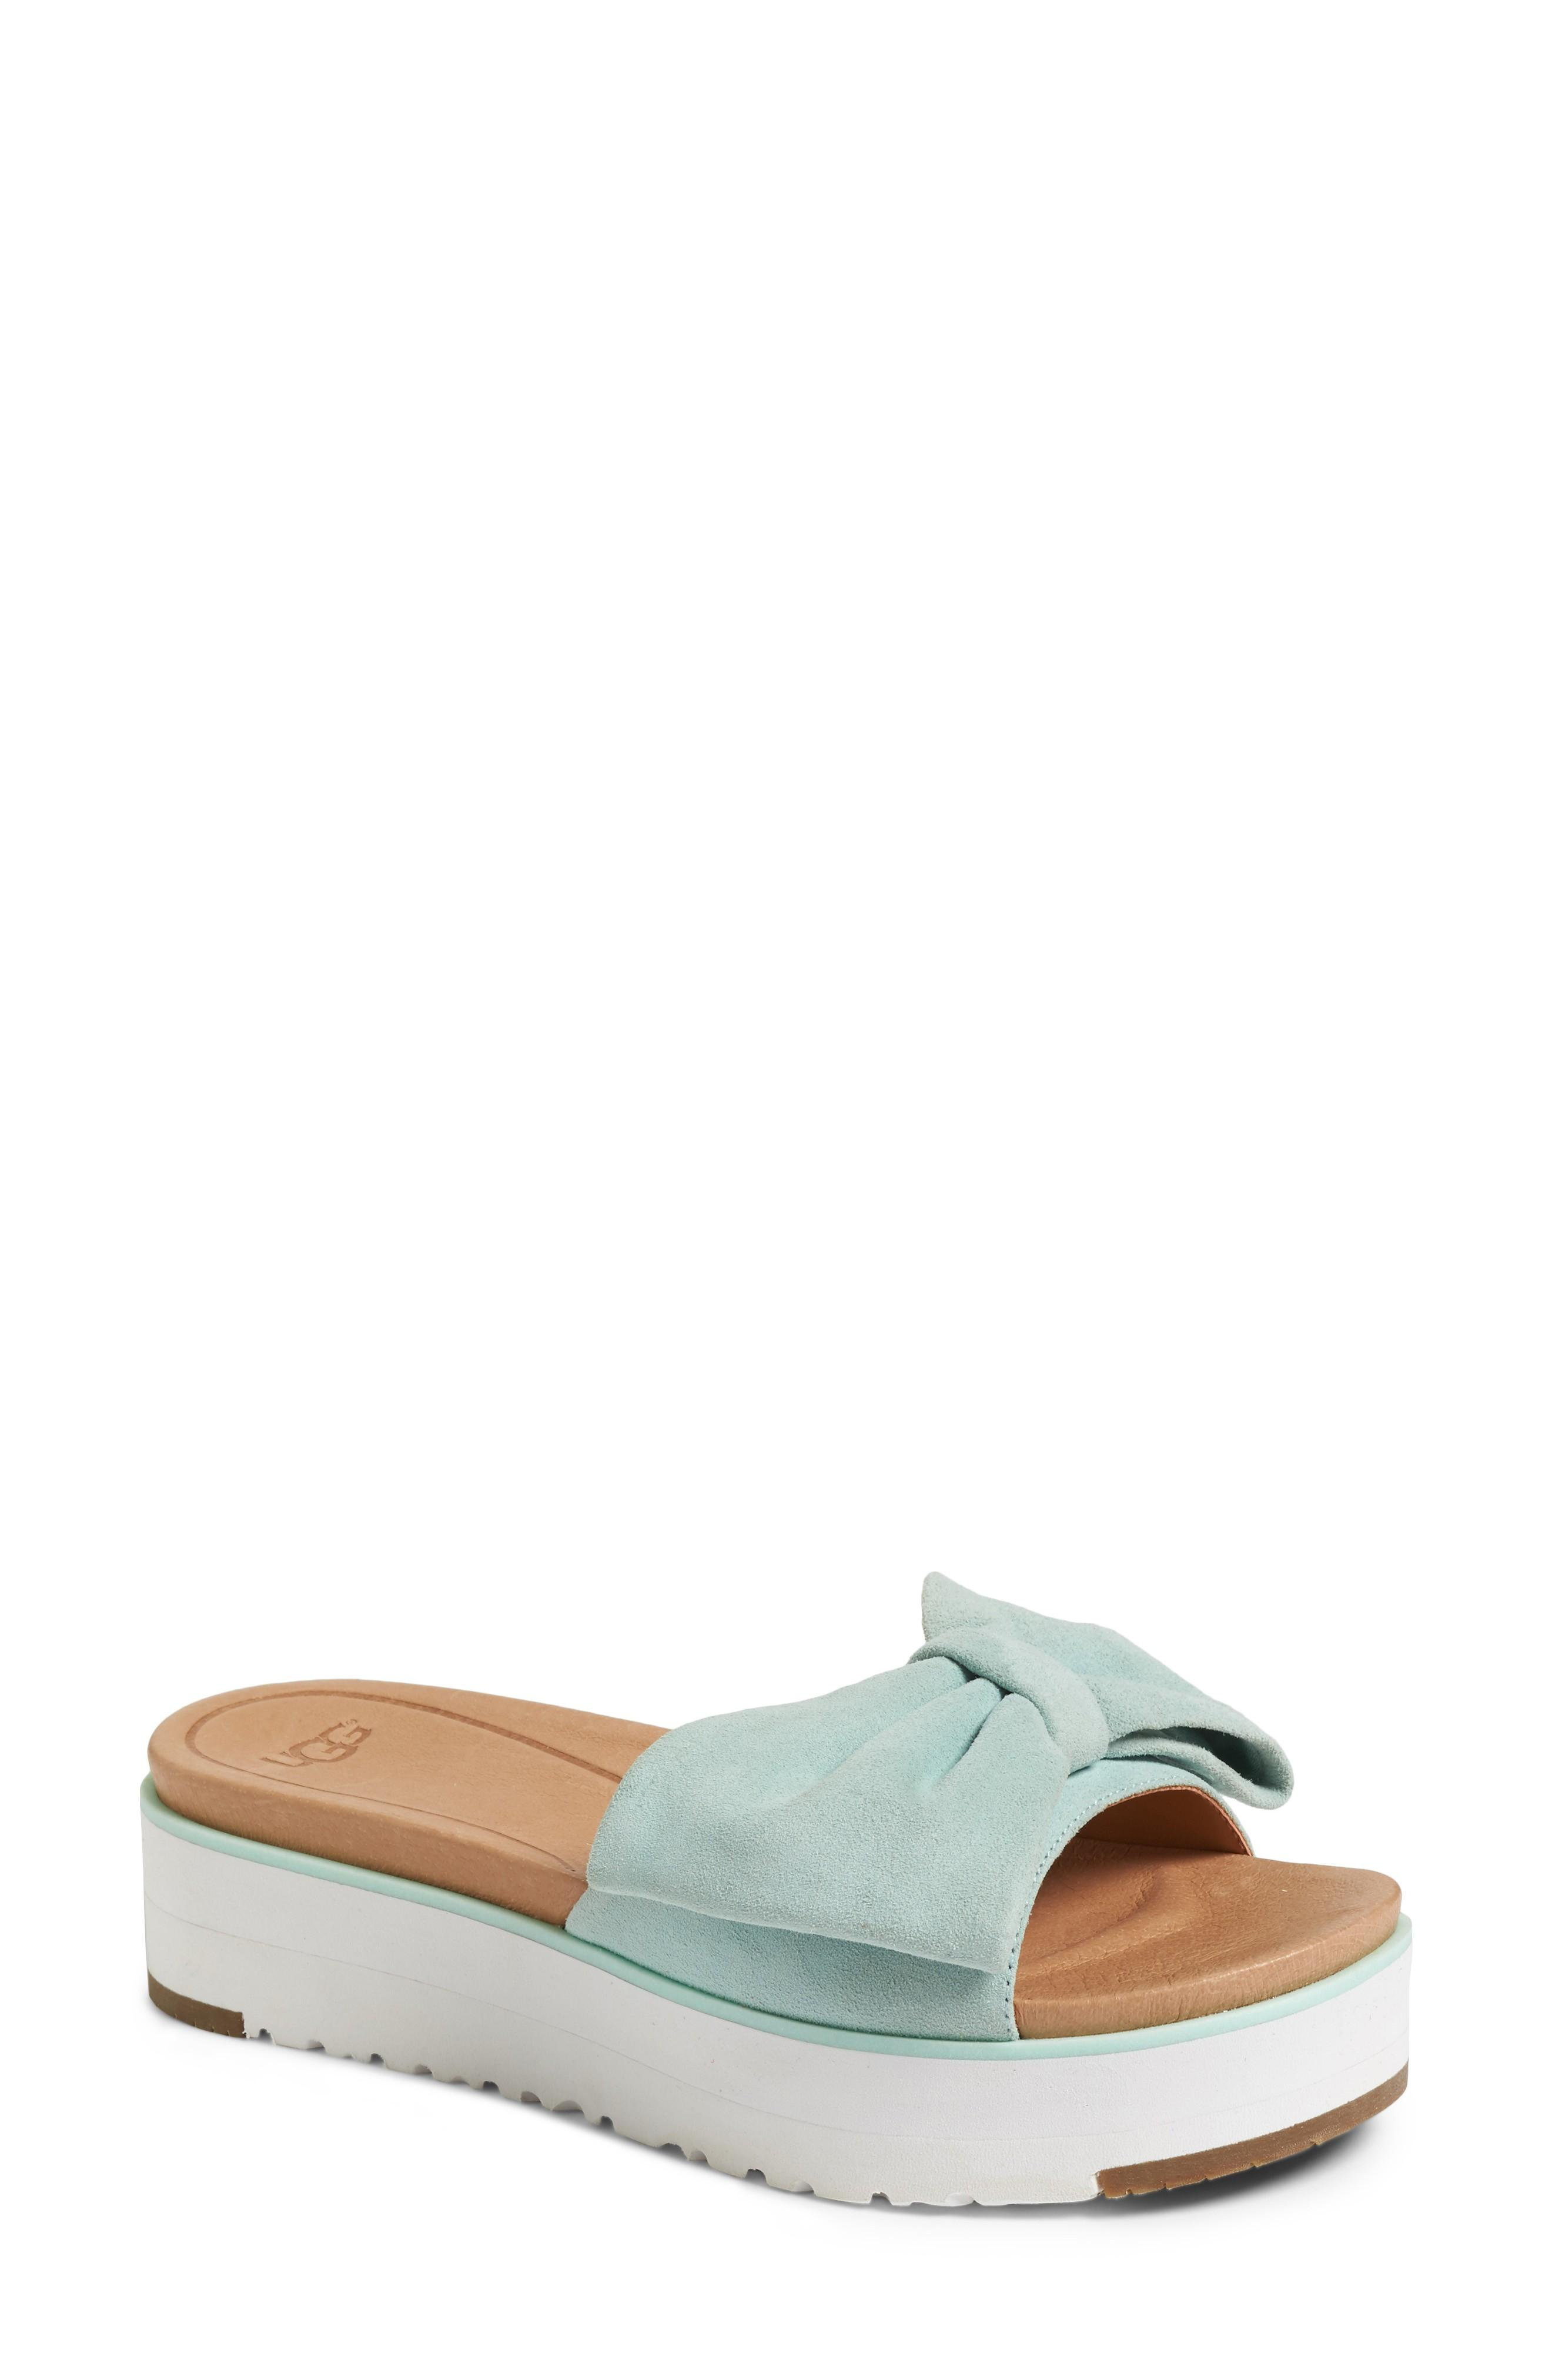 7b8f90ac5ac An oversized bow graces the top of a playful slide sandal grounded by a  platform Treadlite by UGG sole for added cushioning